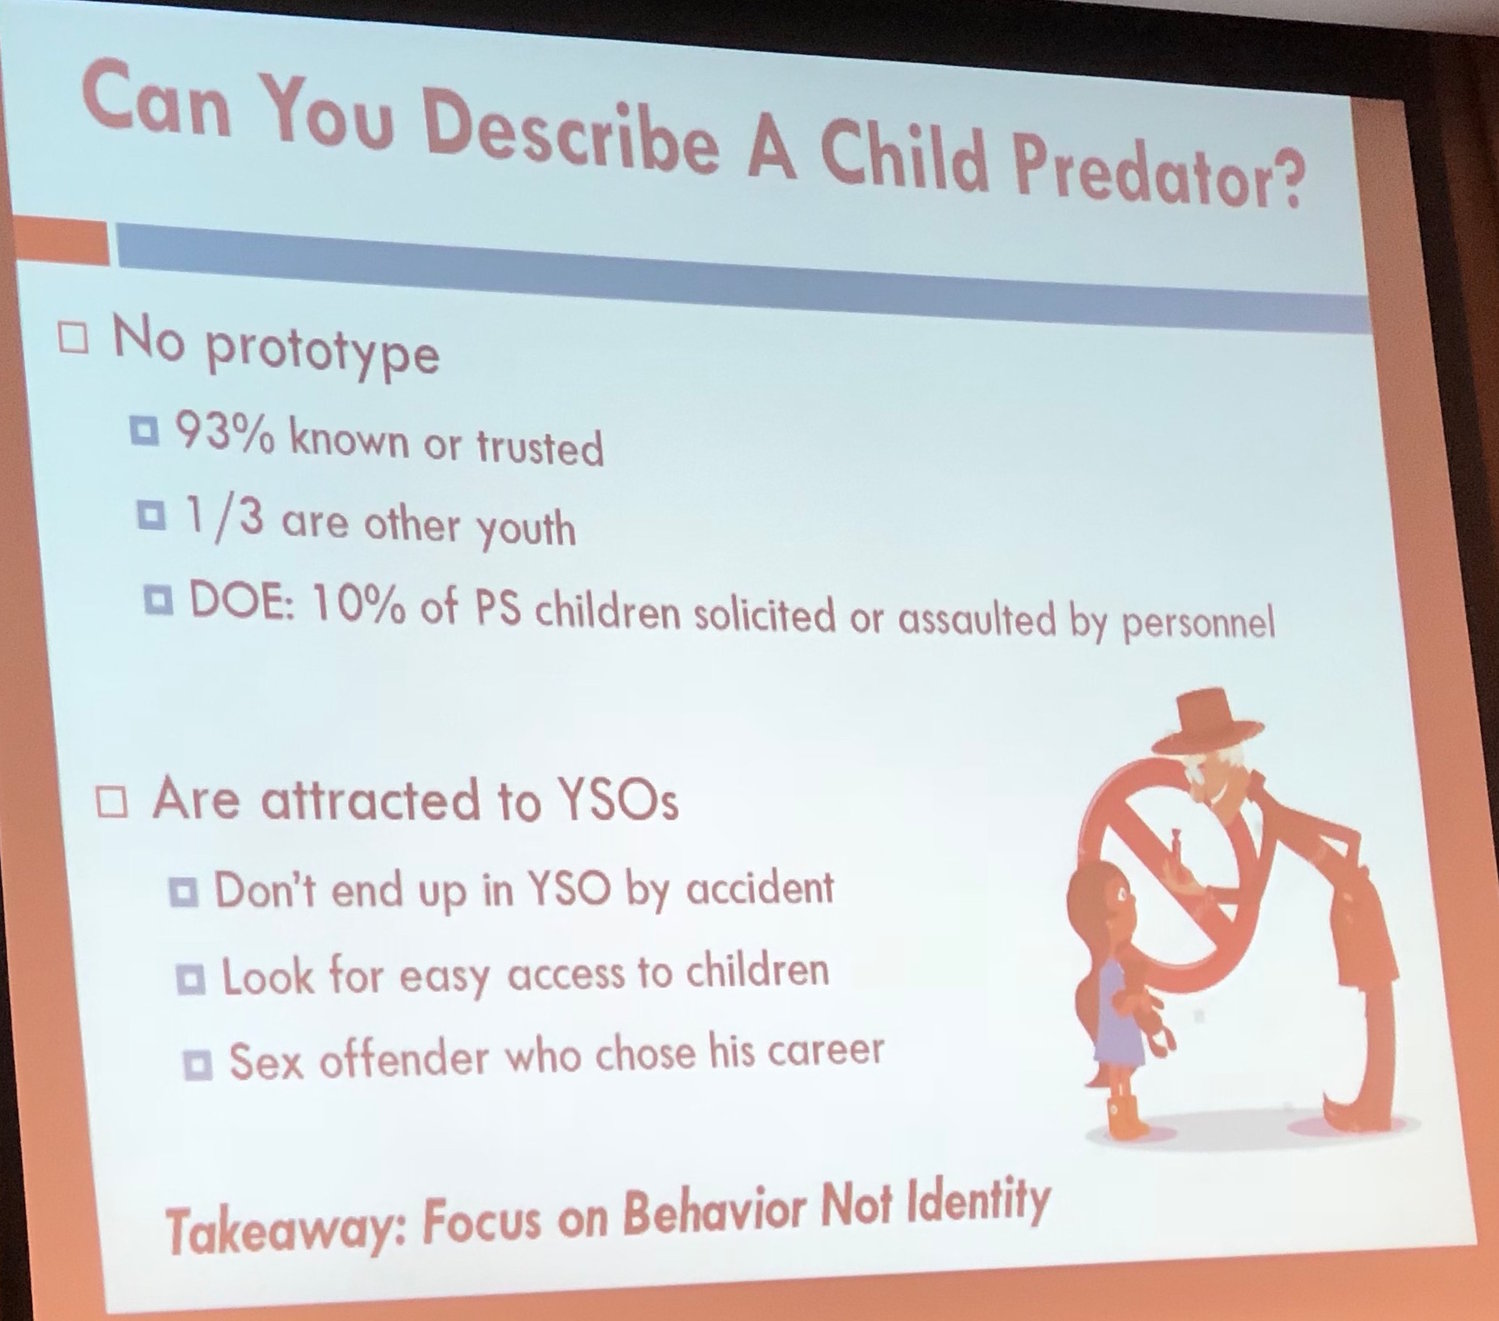 Child predators are not easy to identify and tend to work or volunteer at schools and youth-services organization.